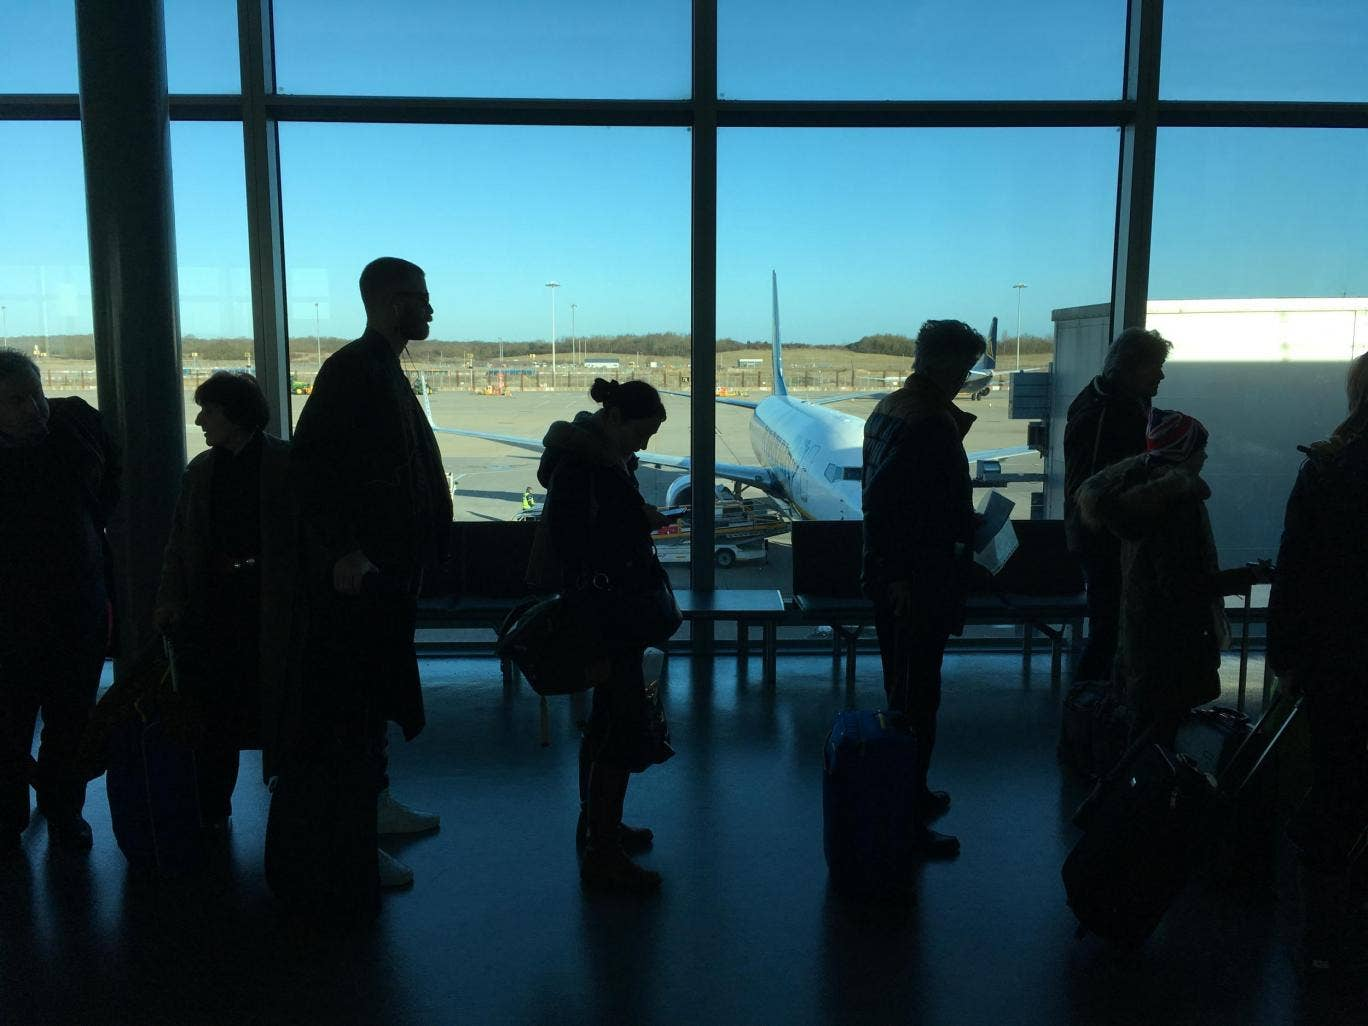 Airports Cash In On Family Holidays By Doubling Car Park Rates The